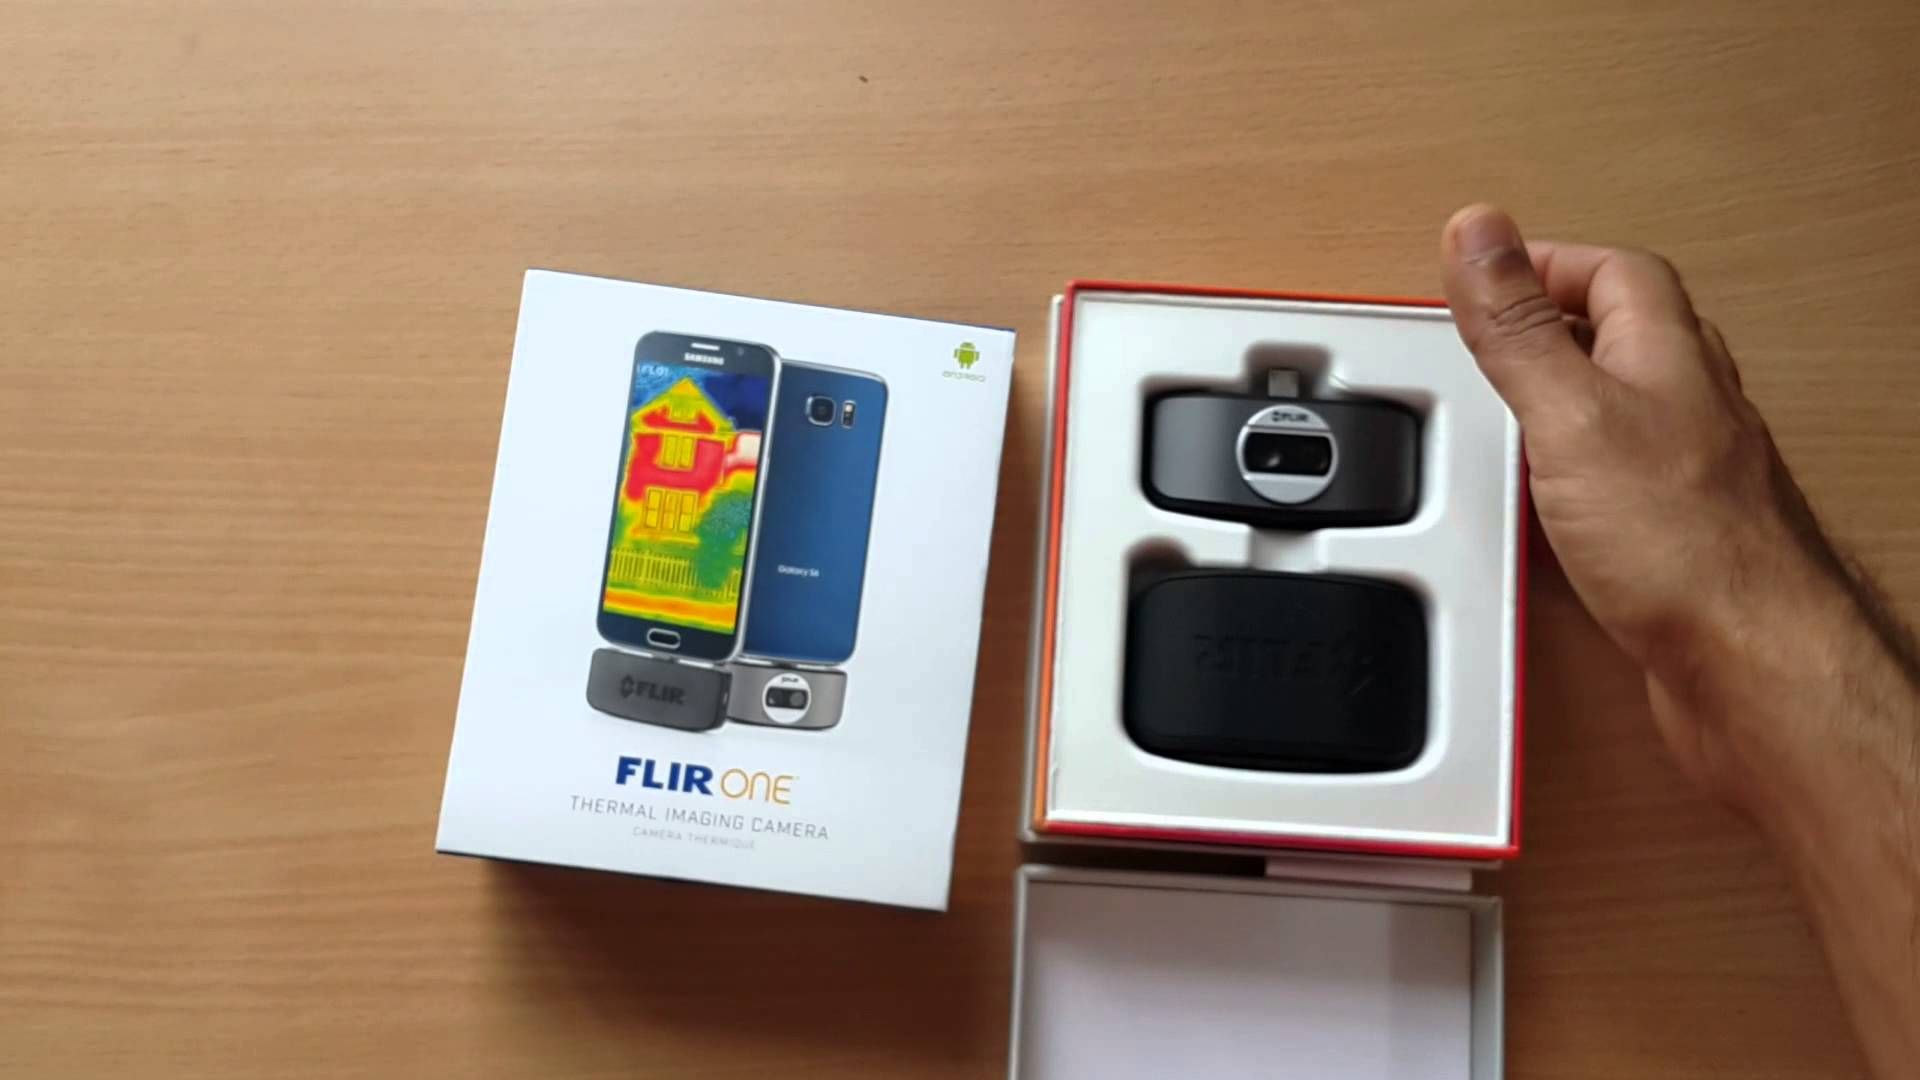 FLIR ONE is a mobile device thermal imager accessory. FLIR